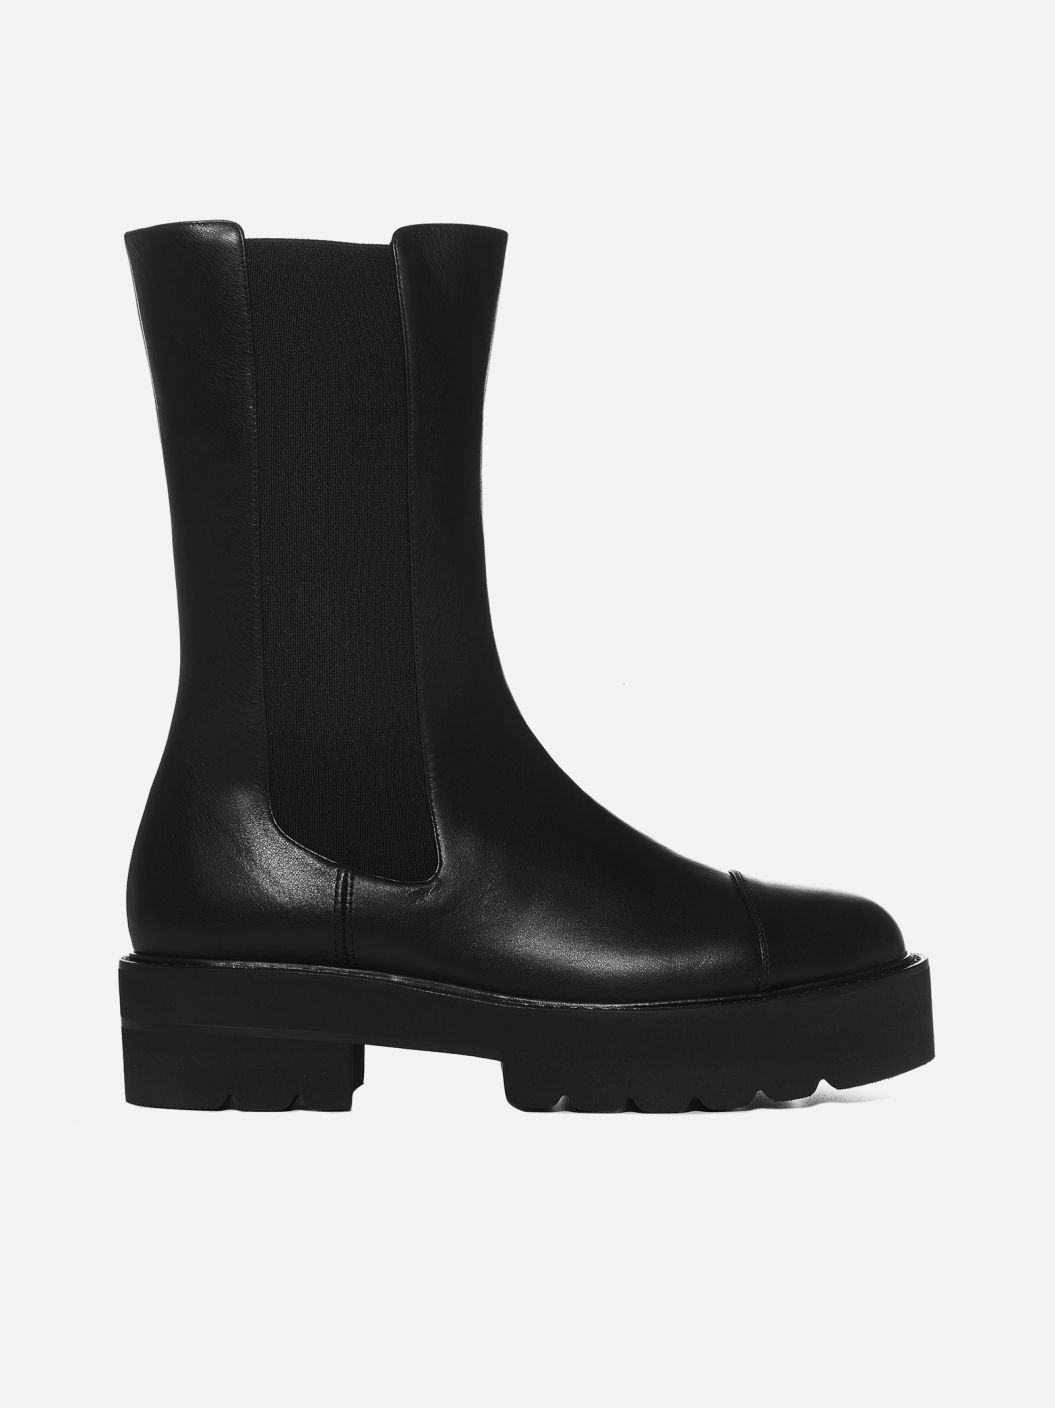 Presley leather Chelsea boots